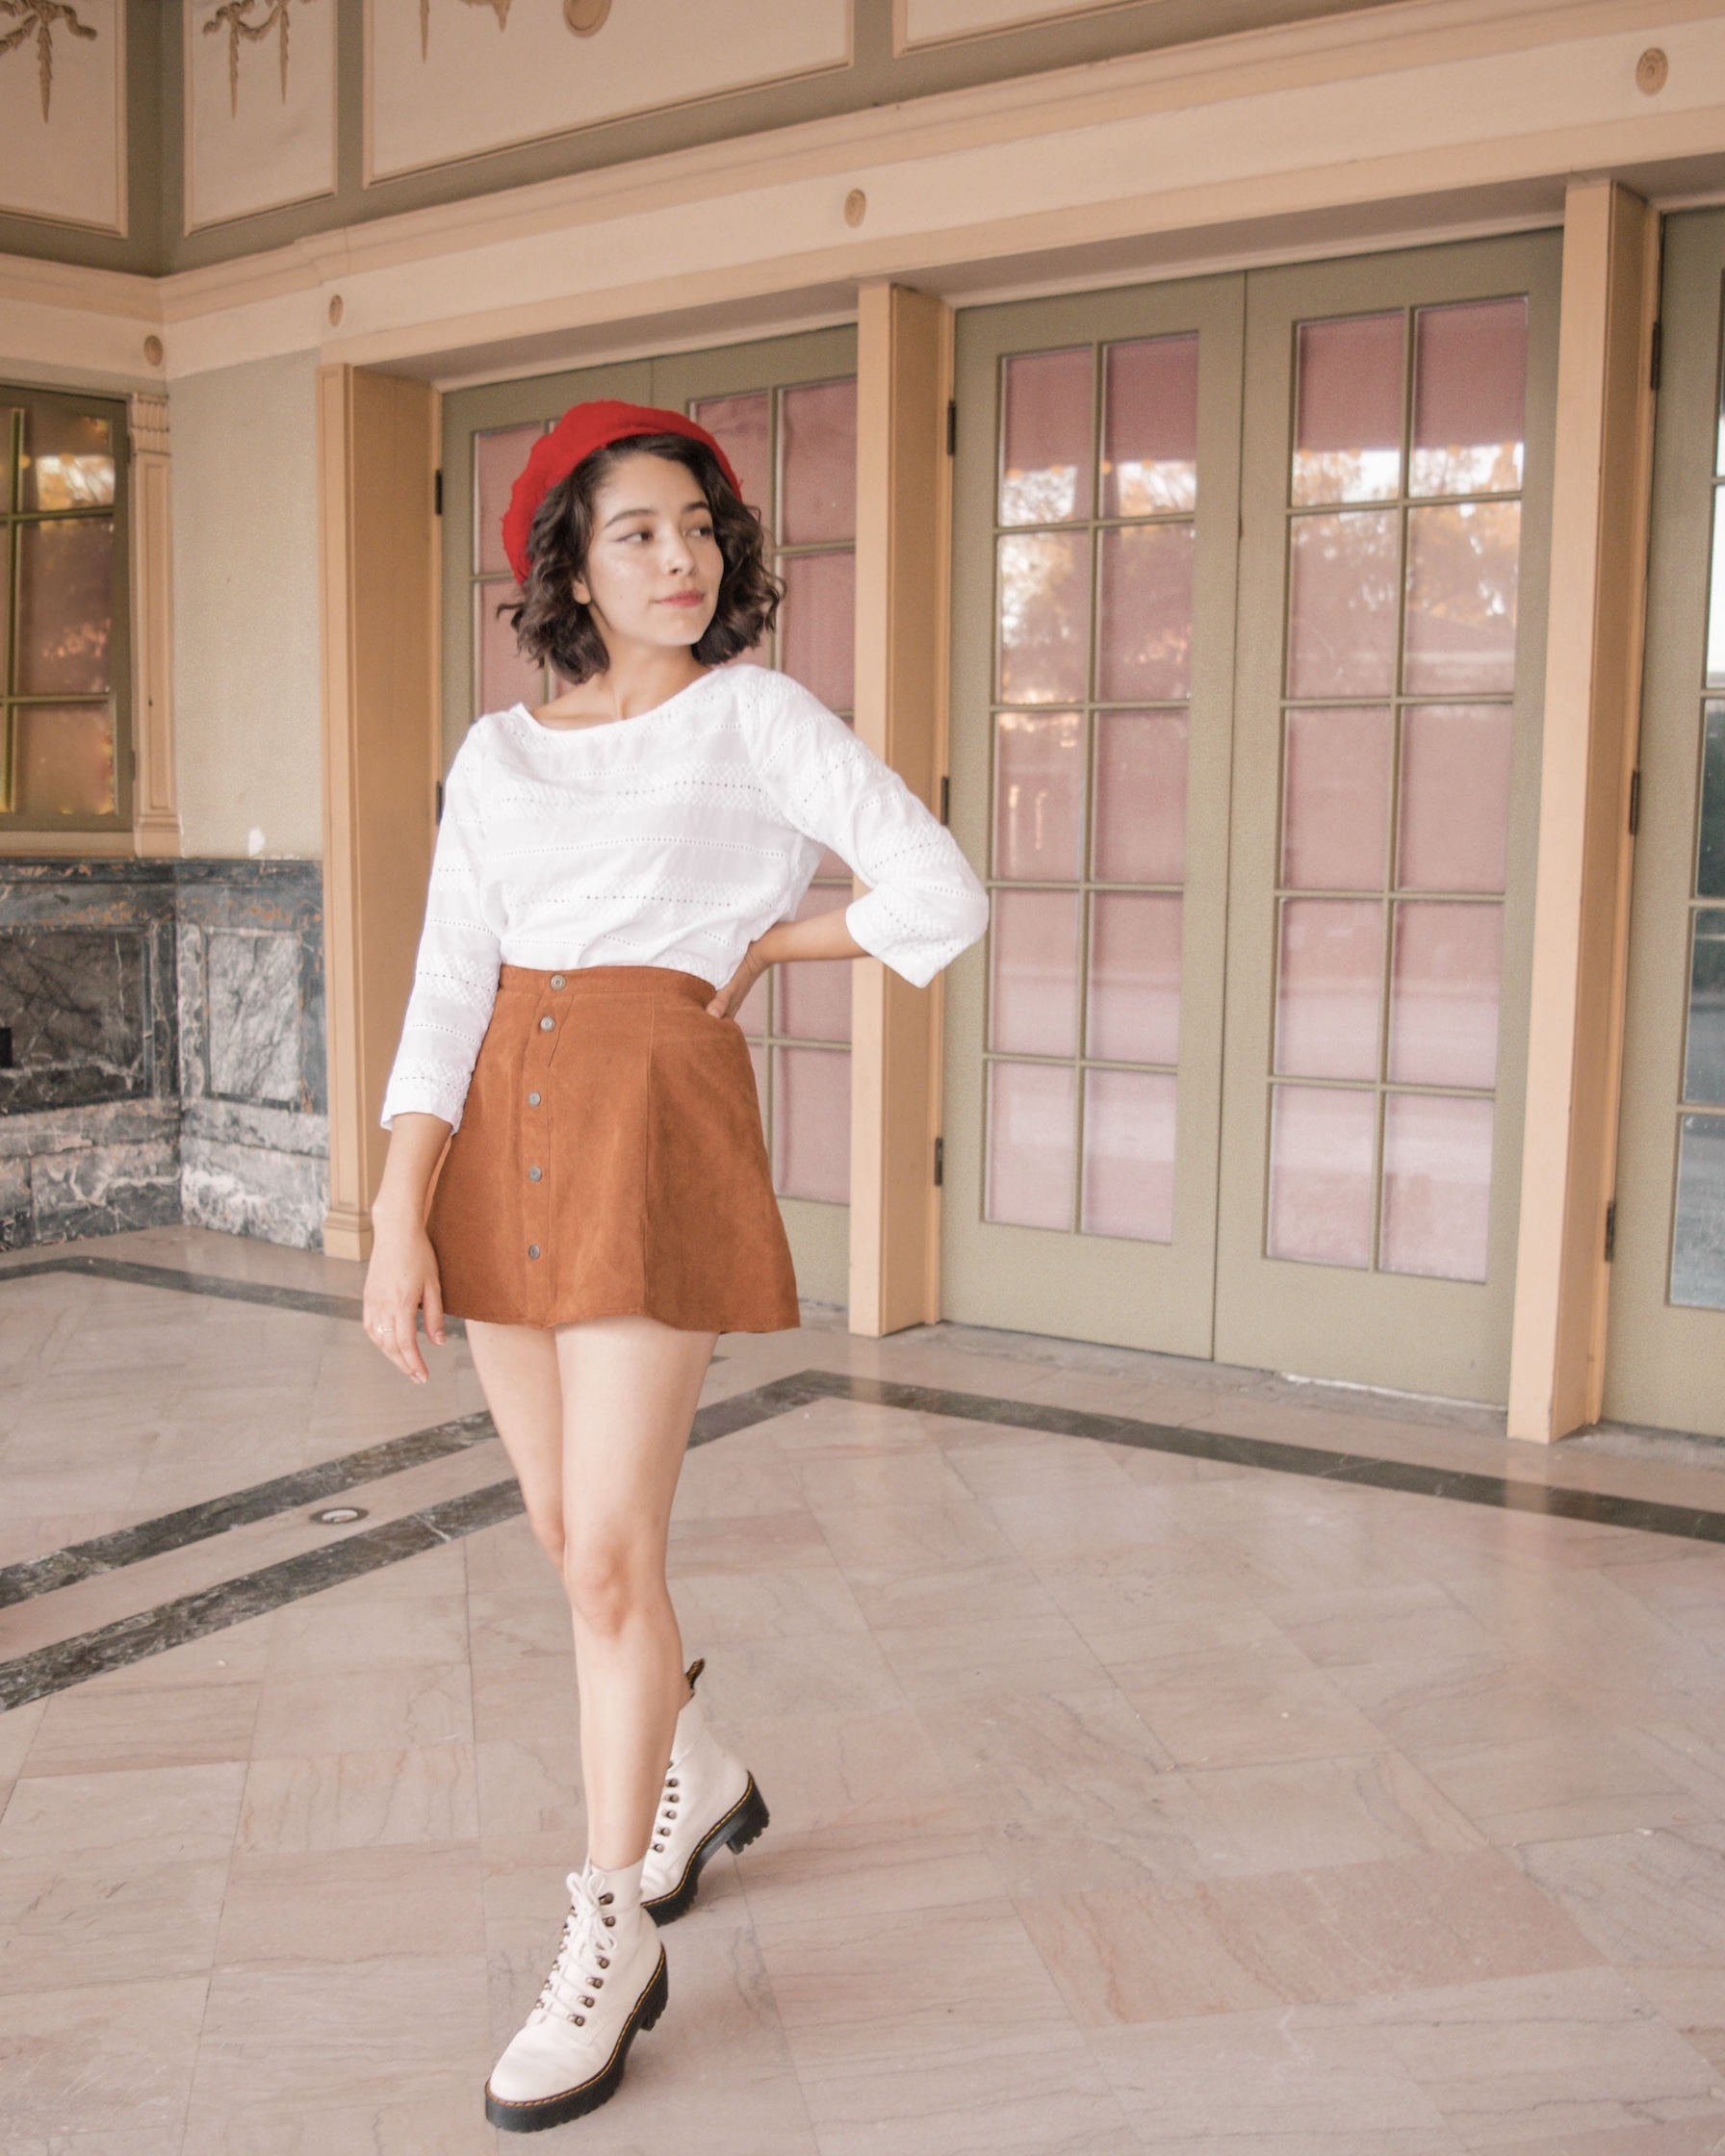 Mini skirt with Dr. Martens combat boots outfit // A Week Of Self-Expressive Outfits With Aja Duran From Aja With Love on The Good Trade